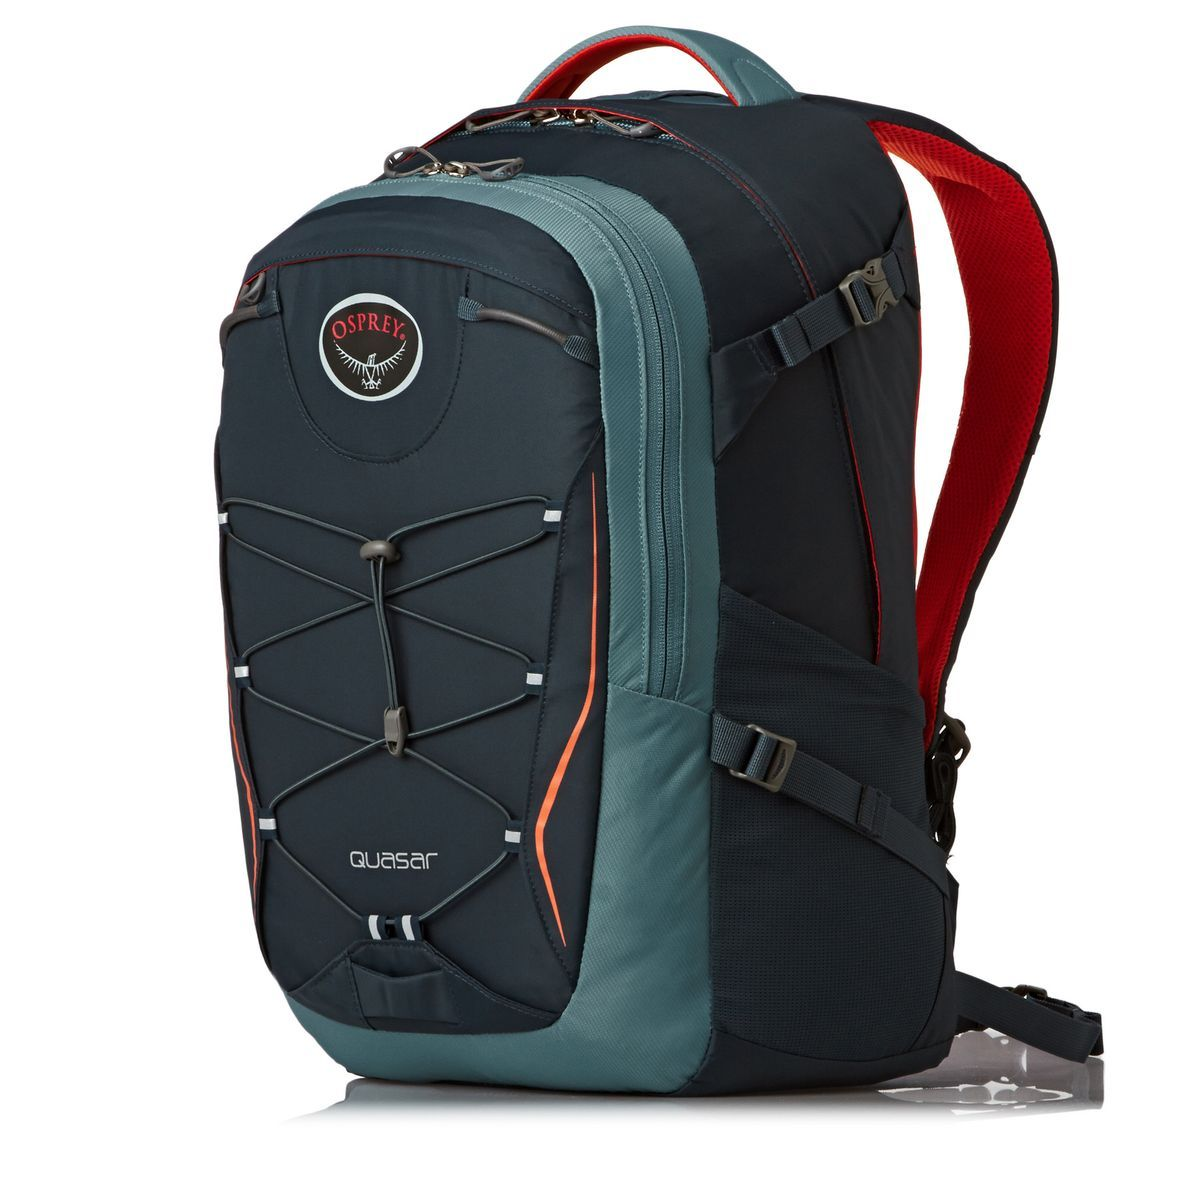 Osprey Quasar 28 Backpack Armor Grey | Backpacks, Osprey